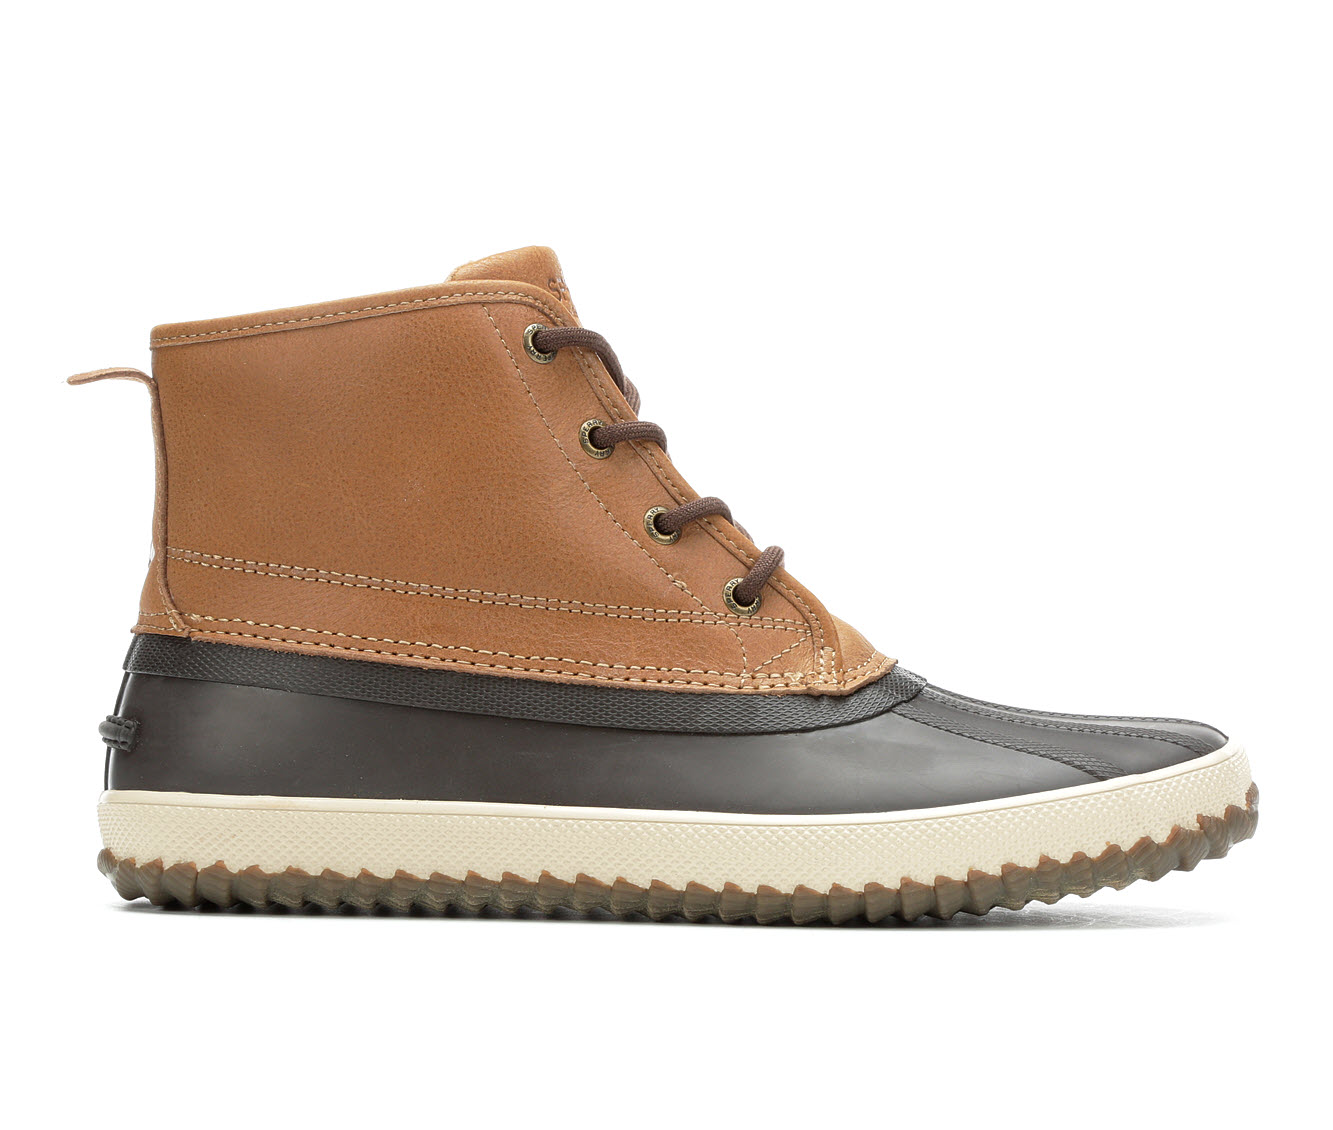 Sperry Breakwater Men's Boots (Brown Faux Leather)